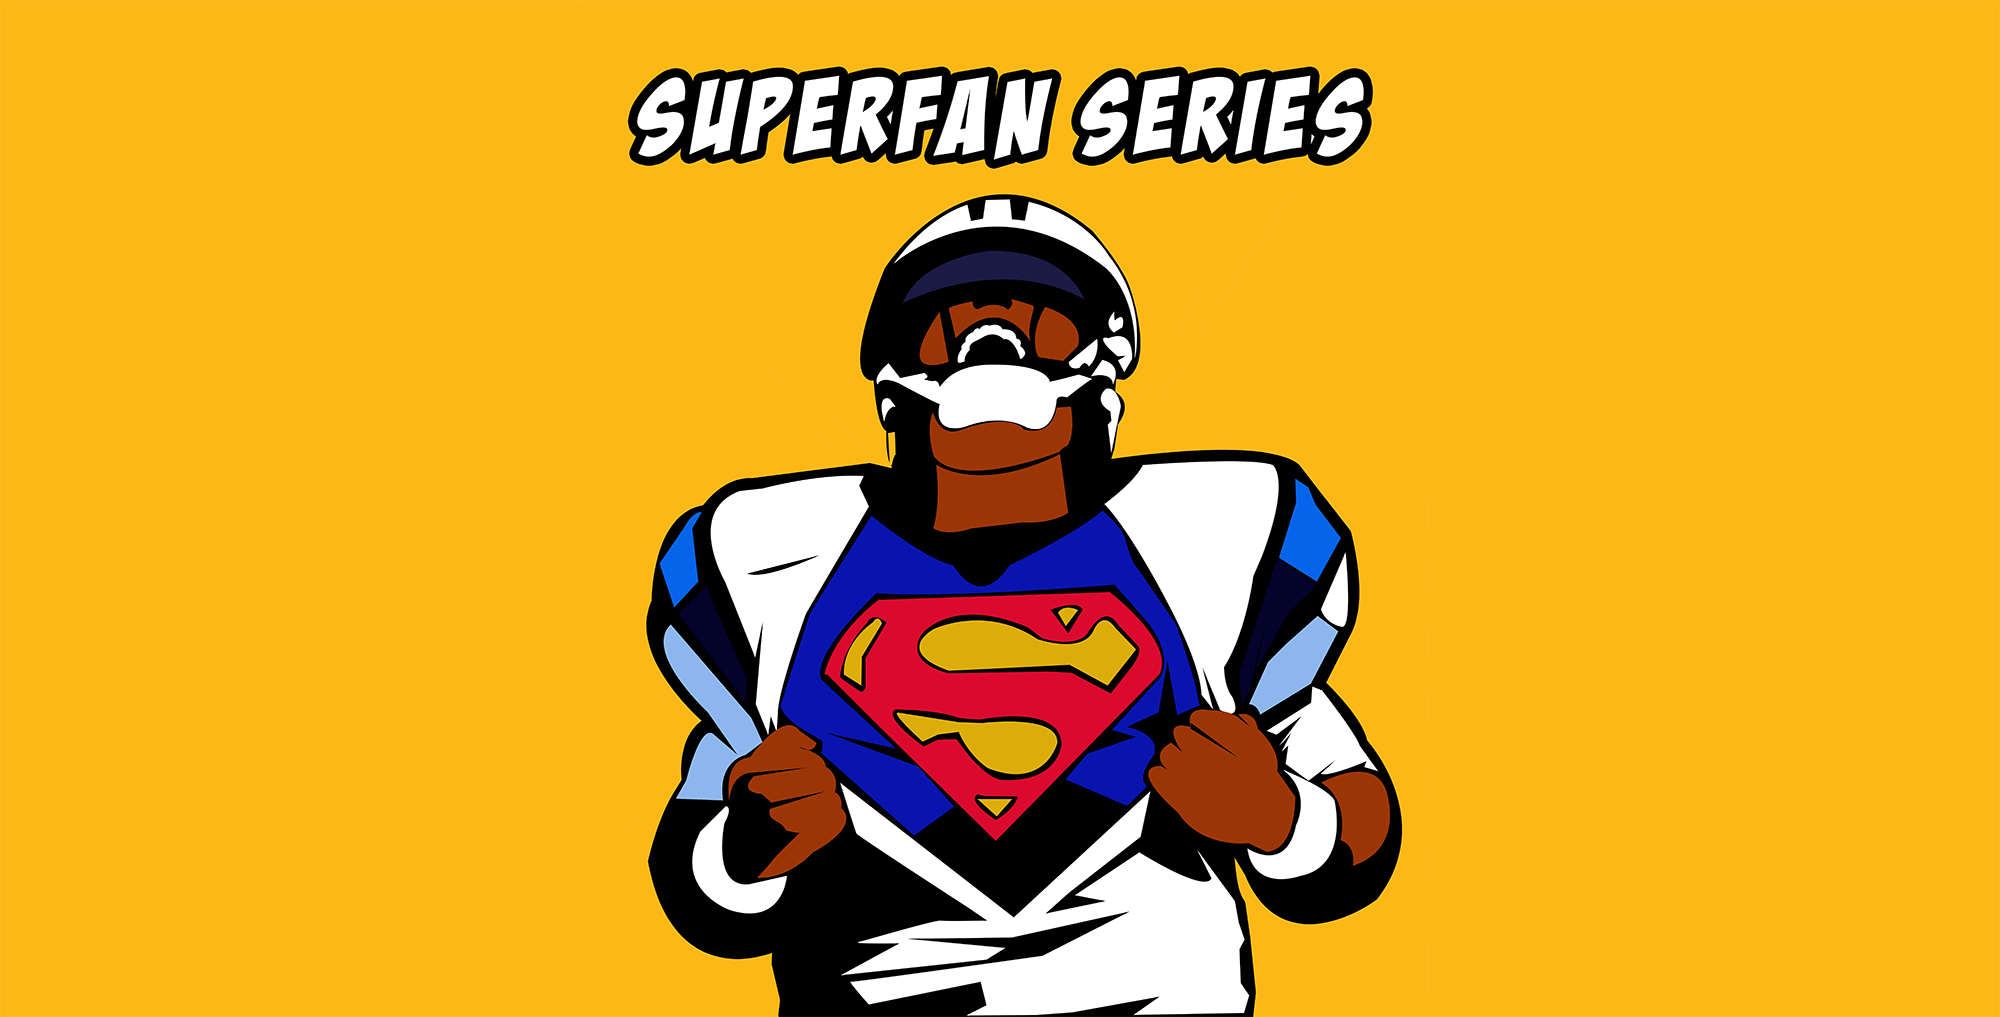 Introducing the Superfan Series